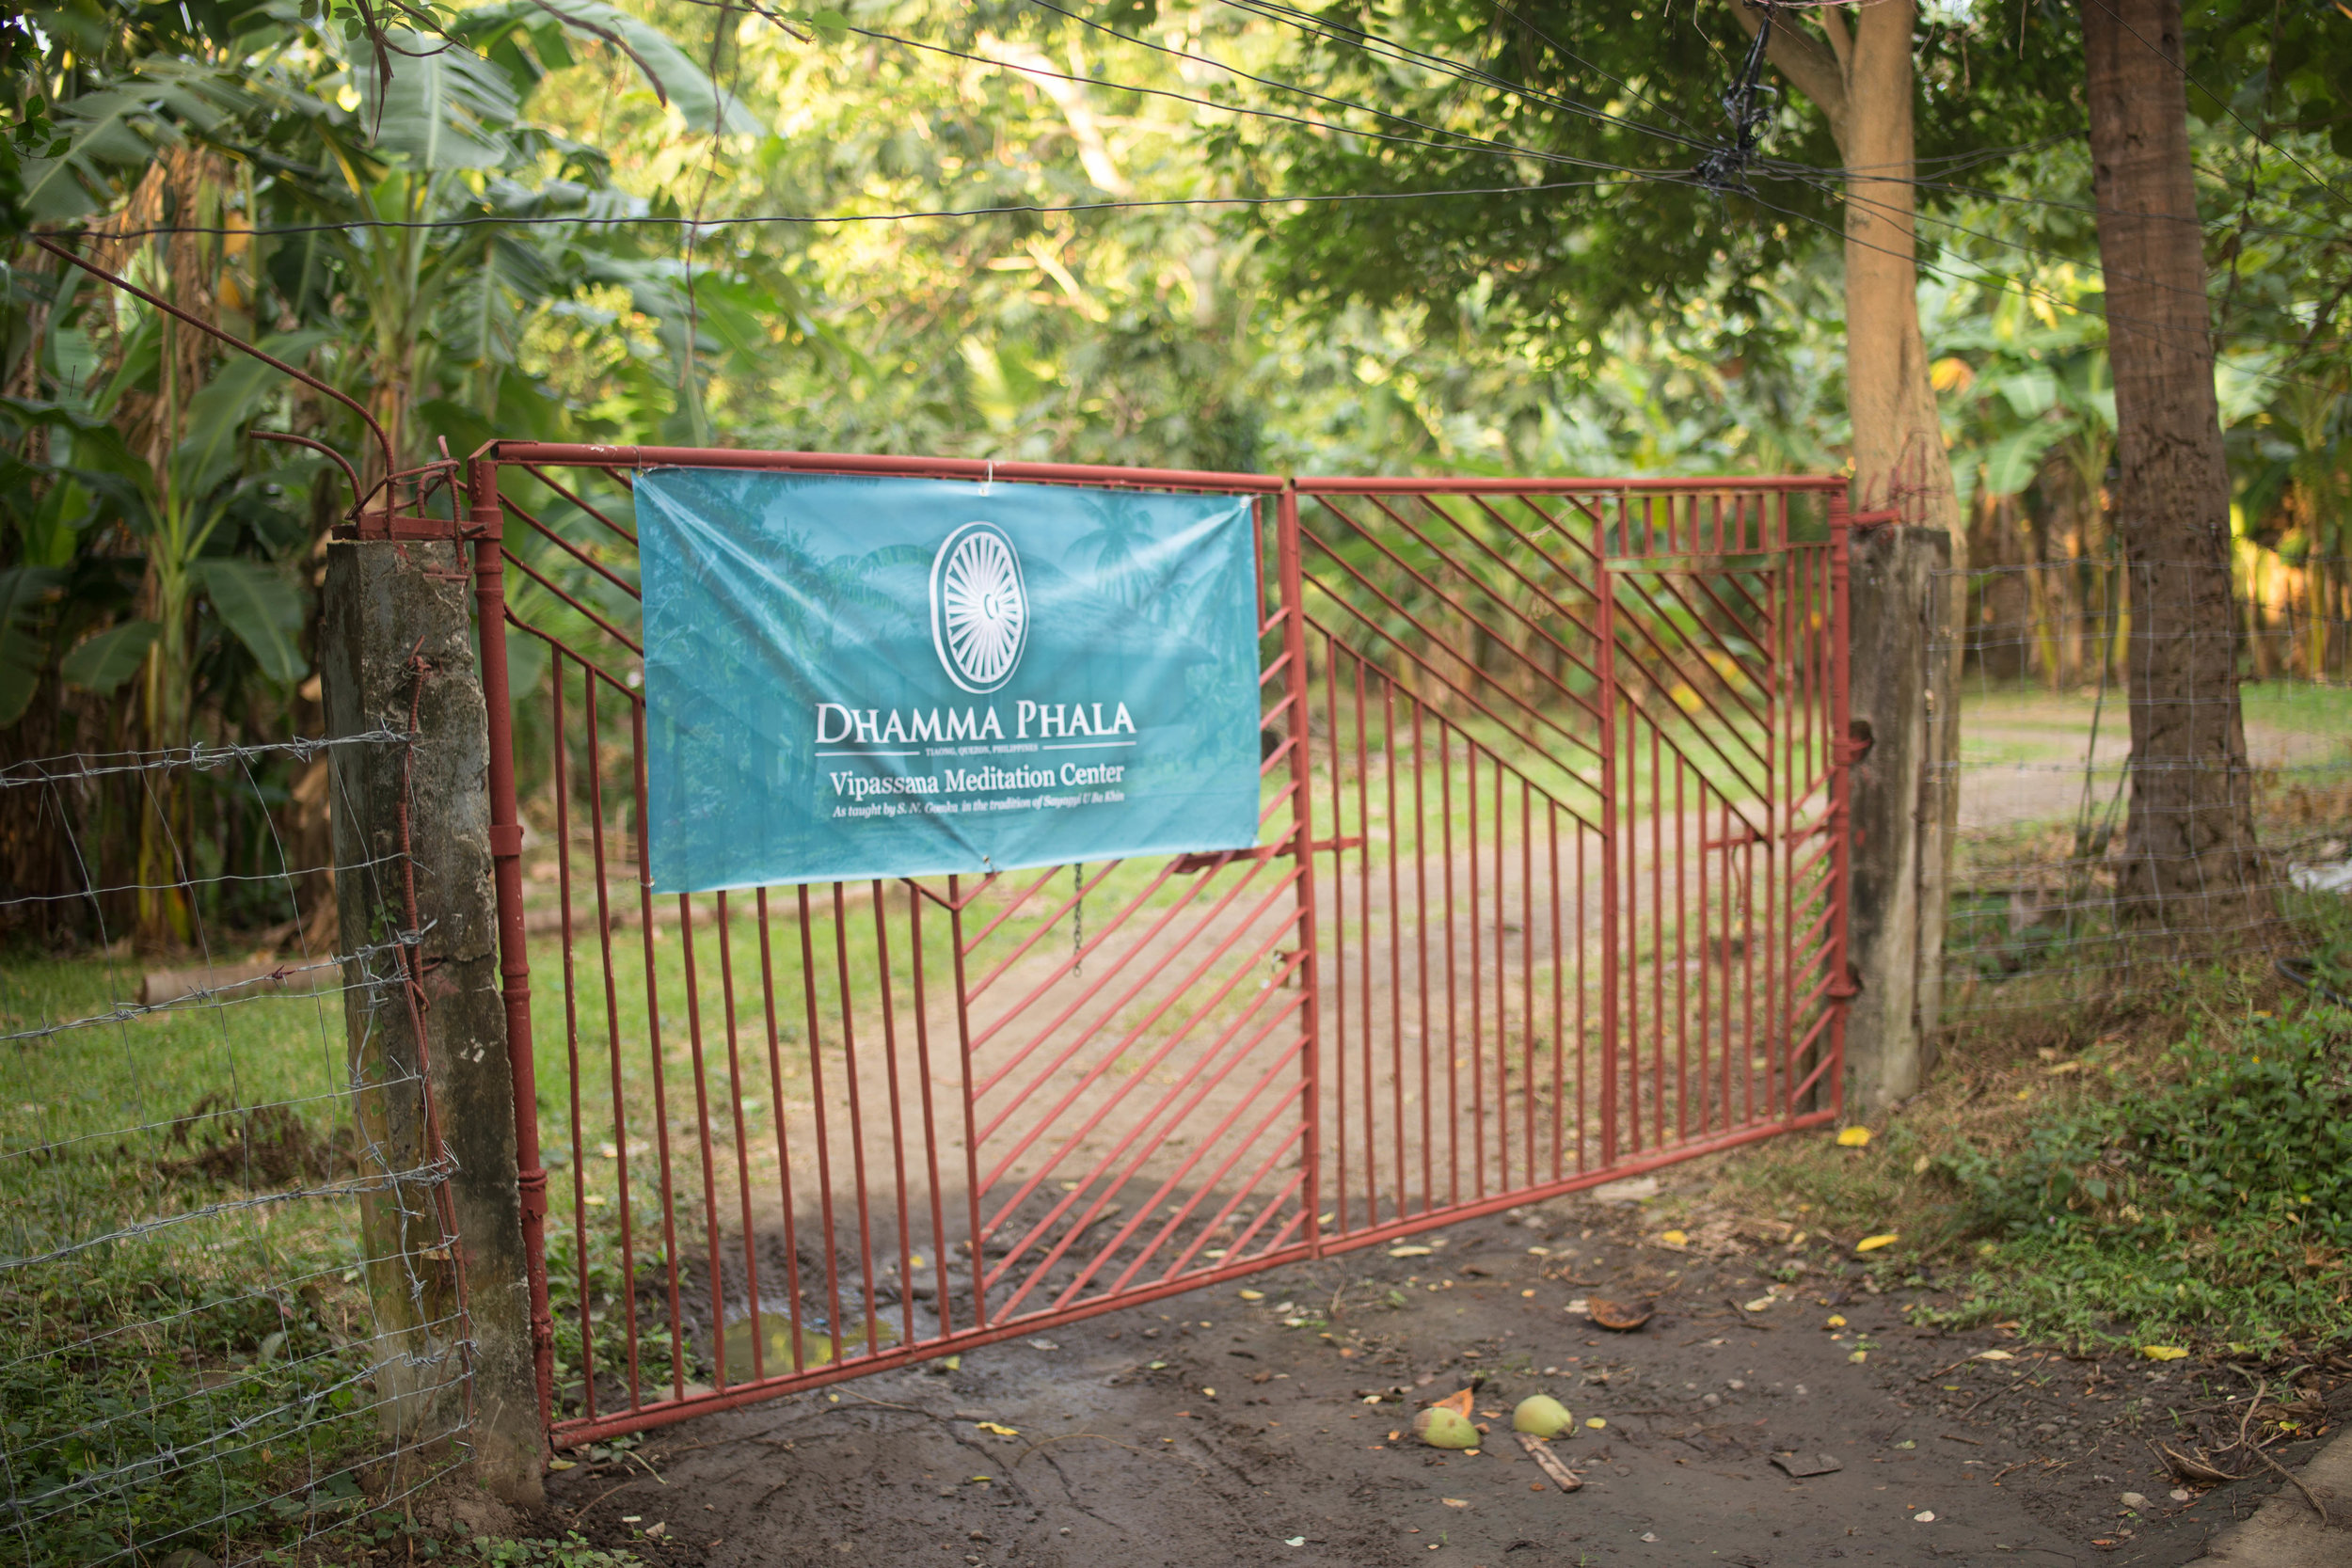 Entrance to Dhamma Phala